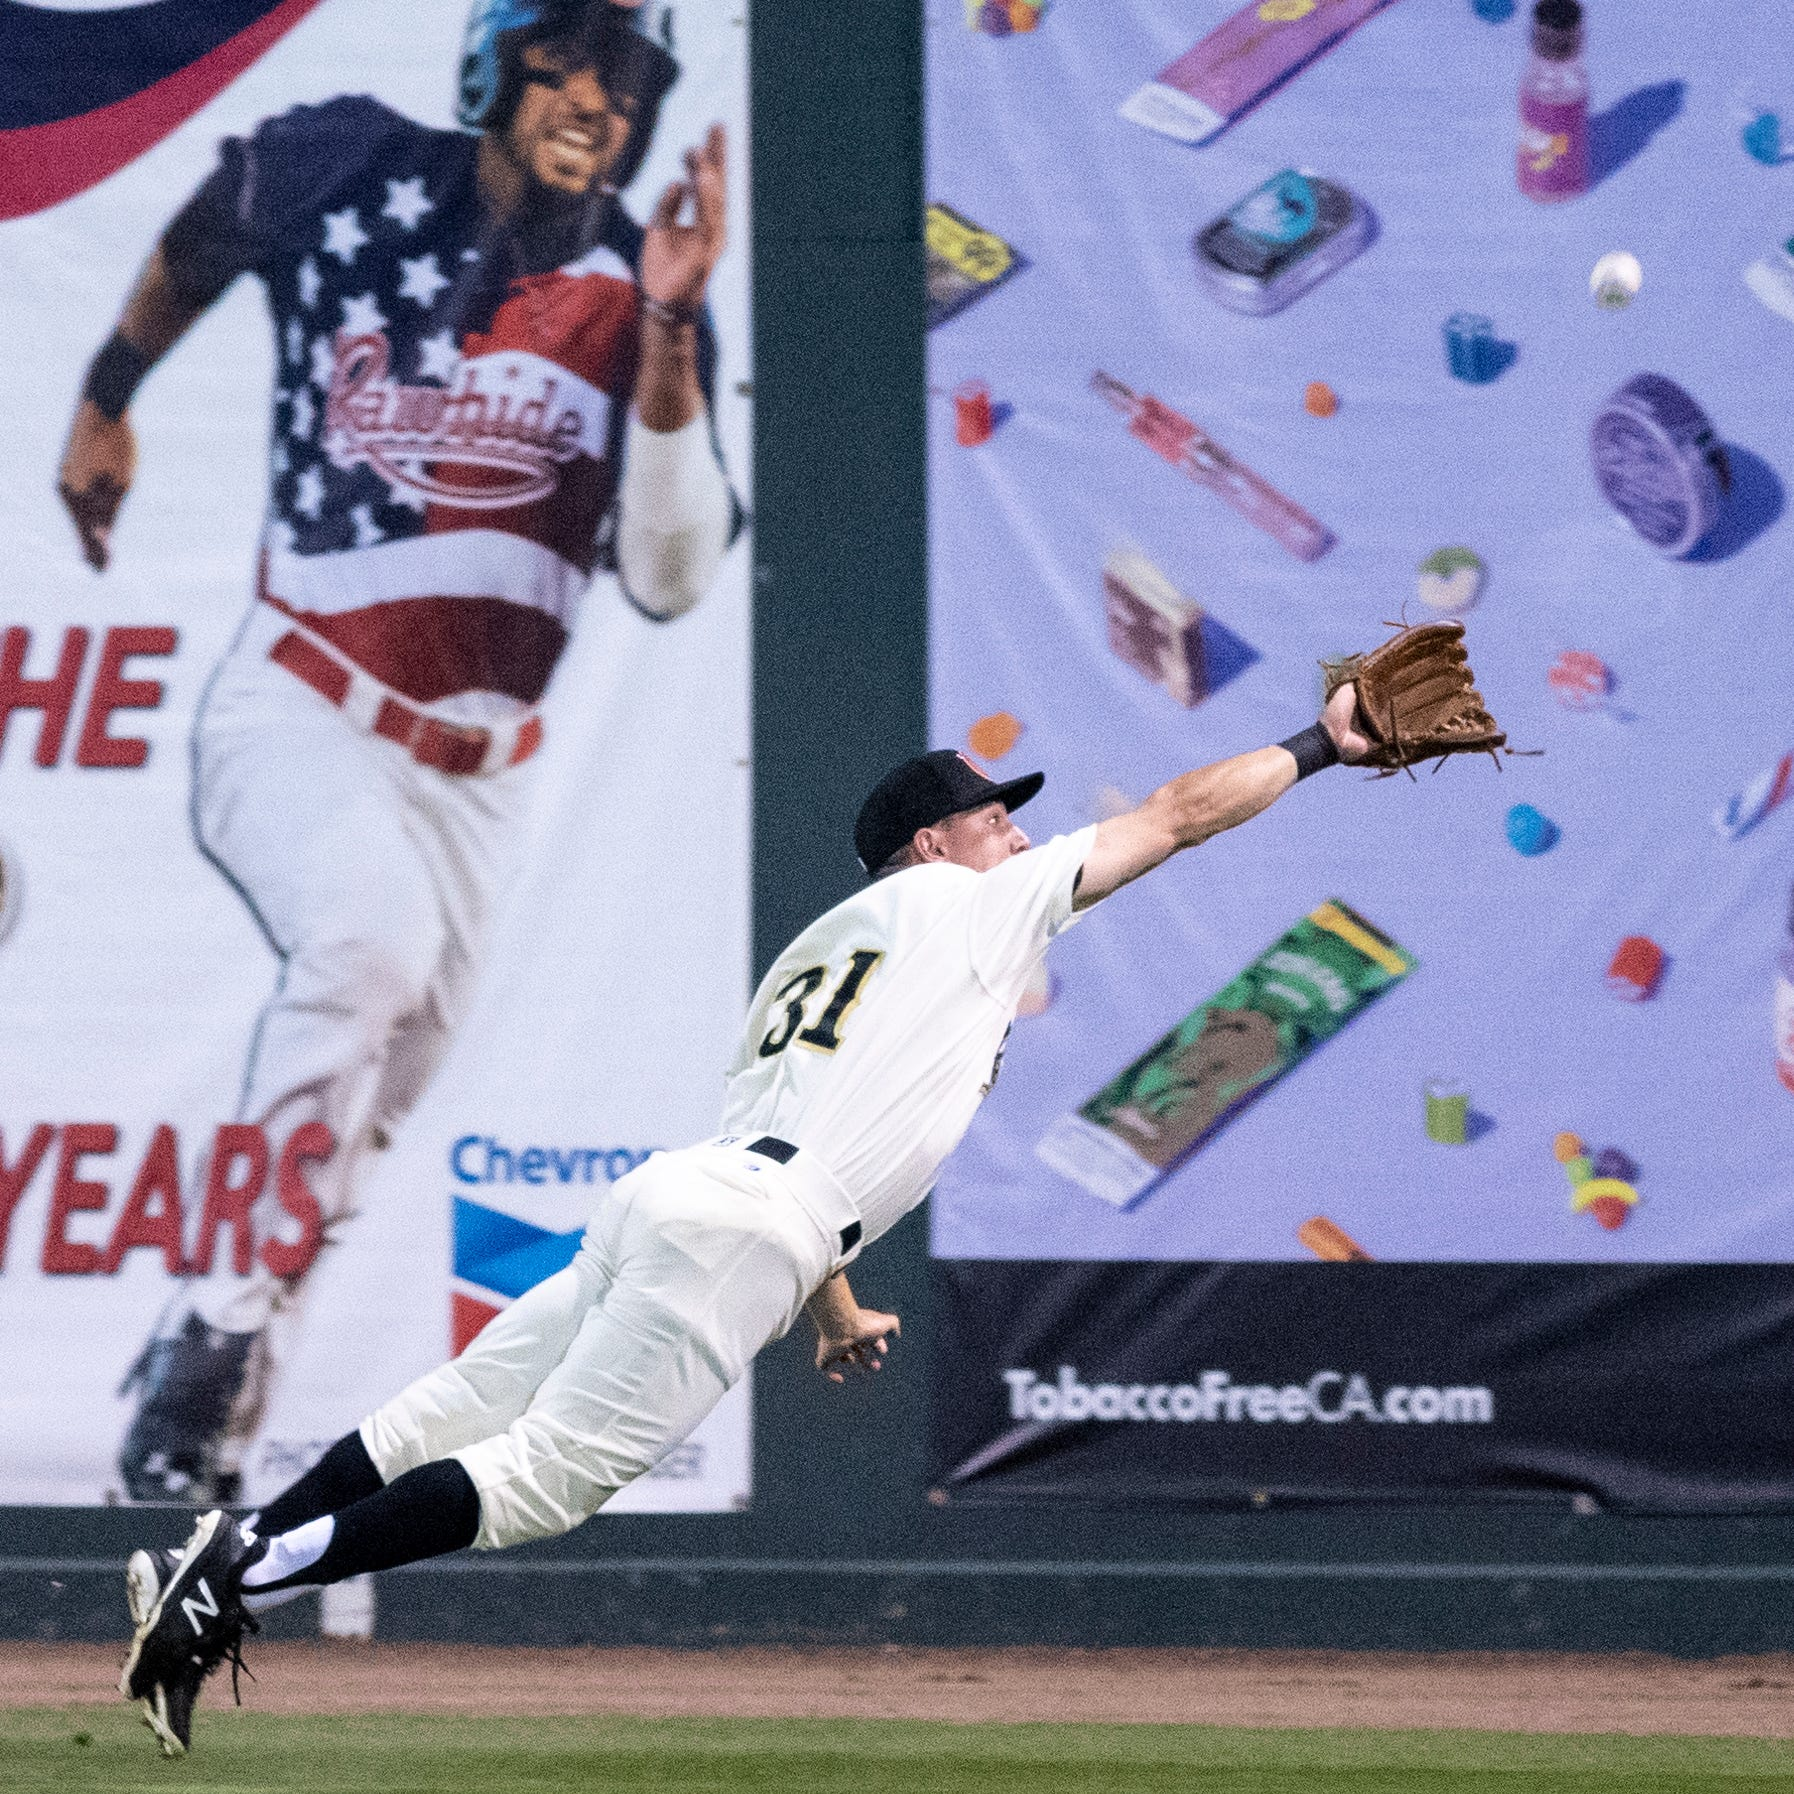 Have you attended a Rawhide game lately? You should. They're winning.